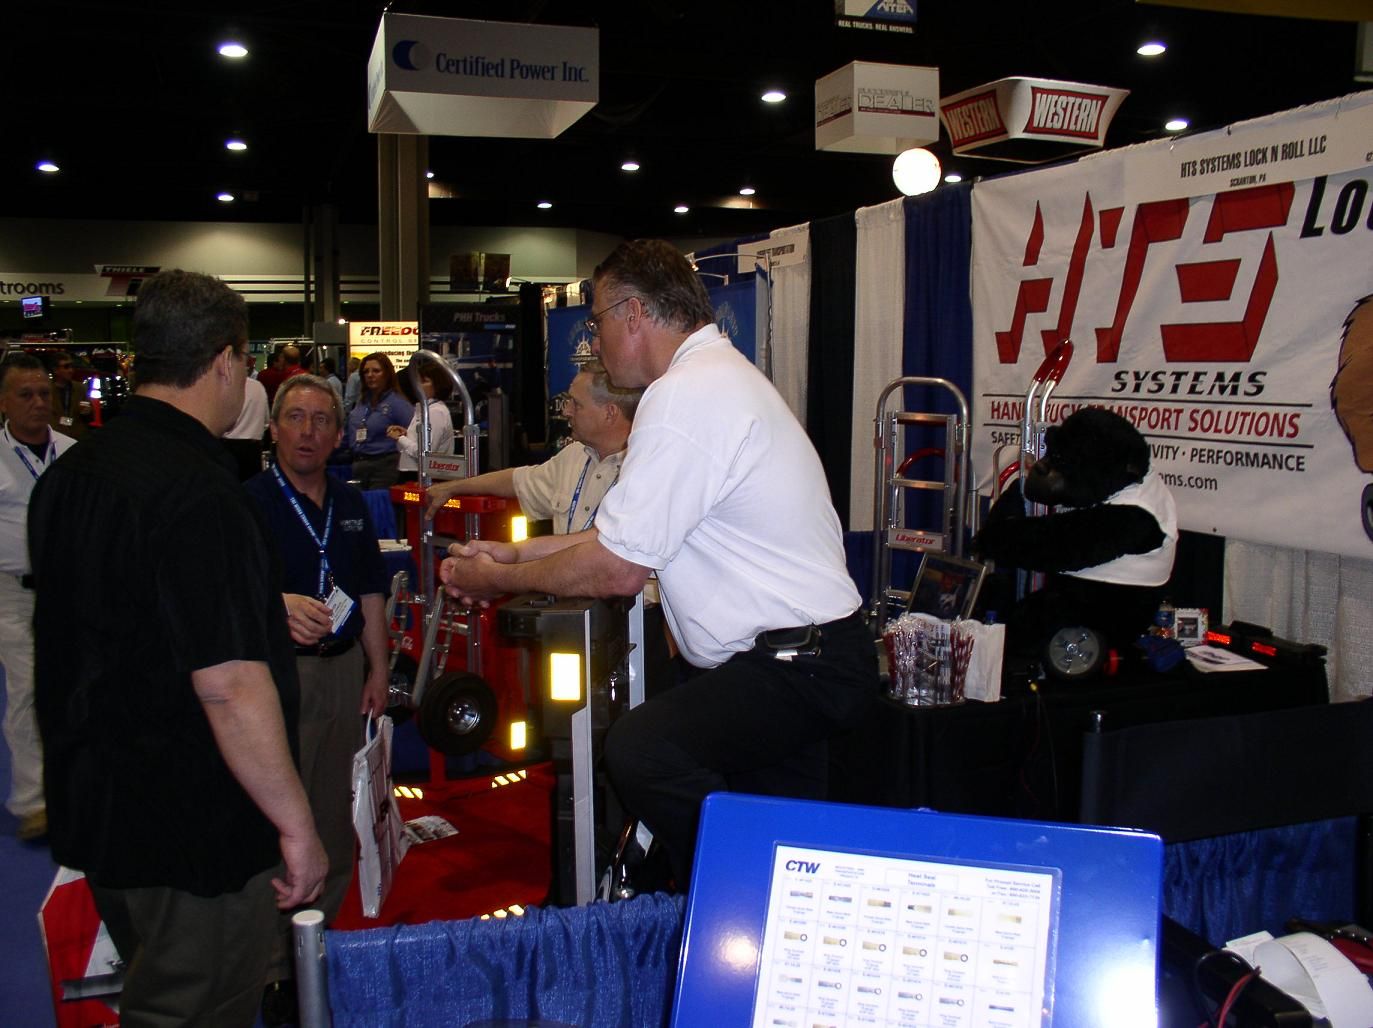 trade show information hts systems lock n roll llc hand truck national truck equipment association ntea mike vacendak and gary o demonstrate the hts ultra rack